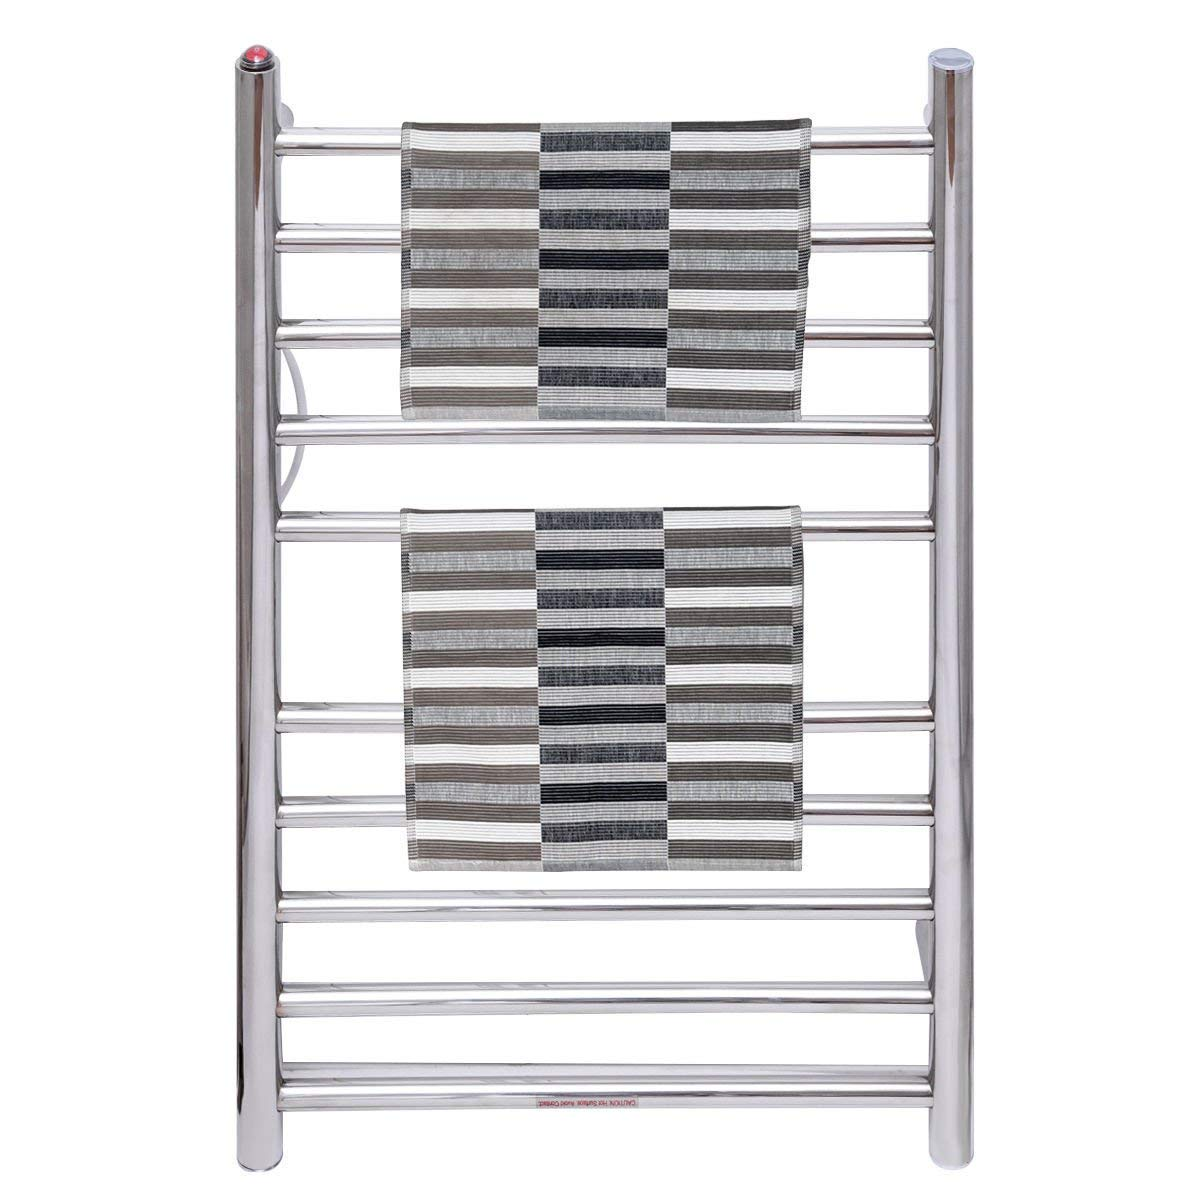 Tangkula Towel Warmer 10 Bar 80W Home Bathroom Space Saving Wall Mounted Cloth Bath Towel Heated Drying Rack (Silver 003) Towel Warmer Drying Rack